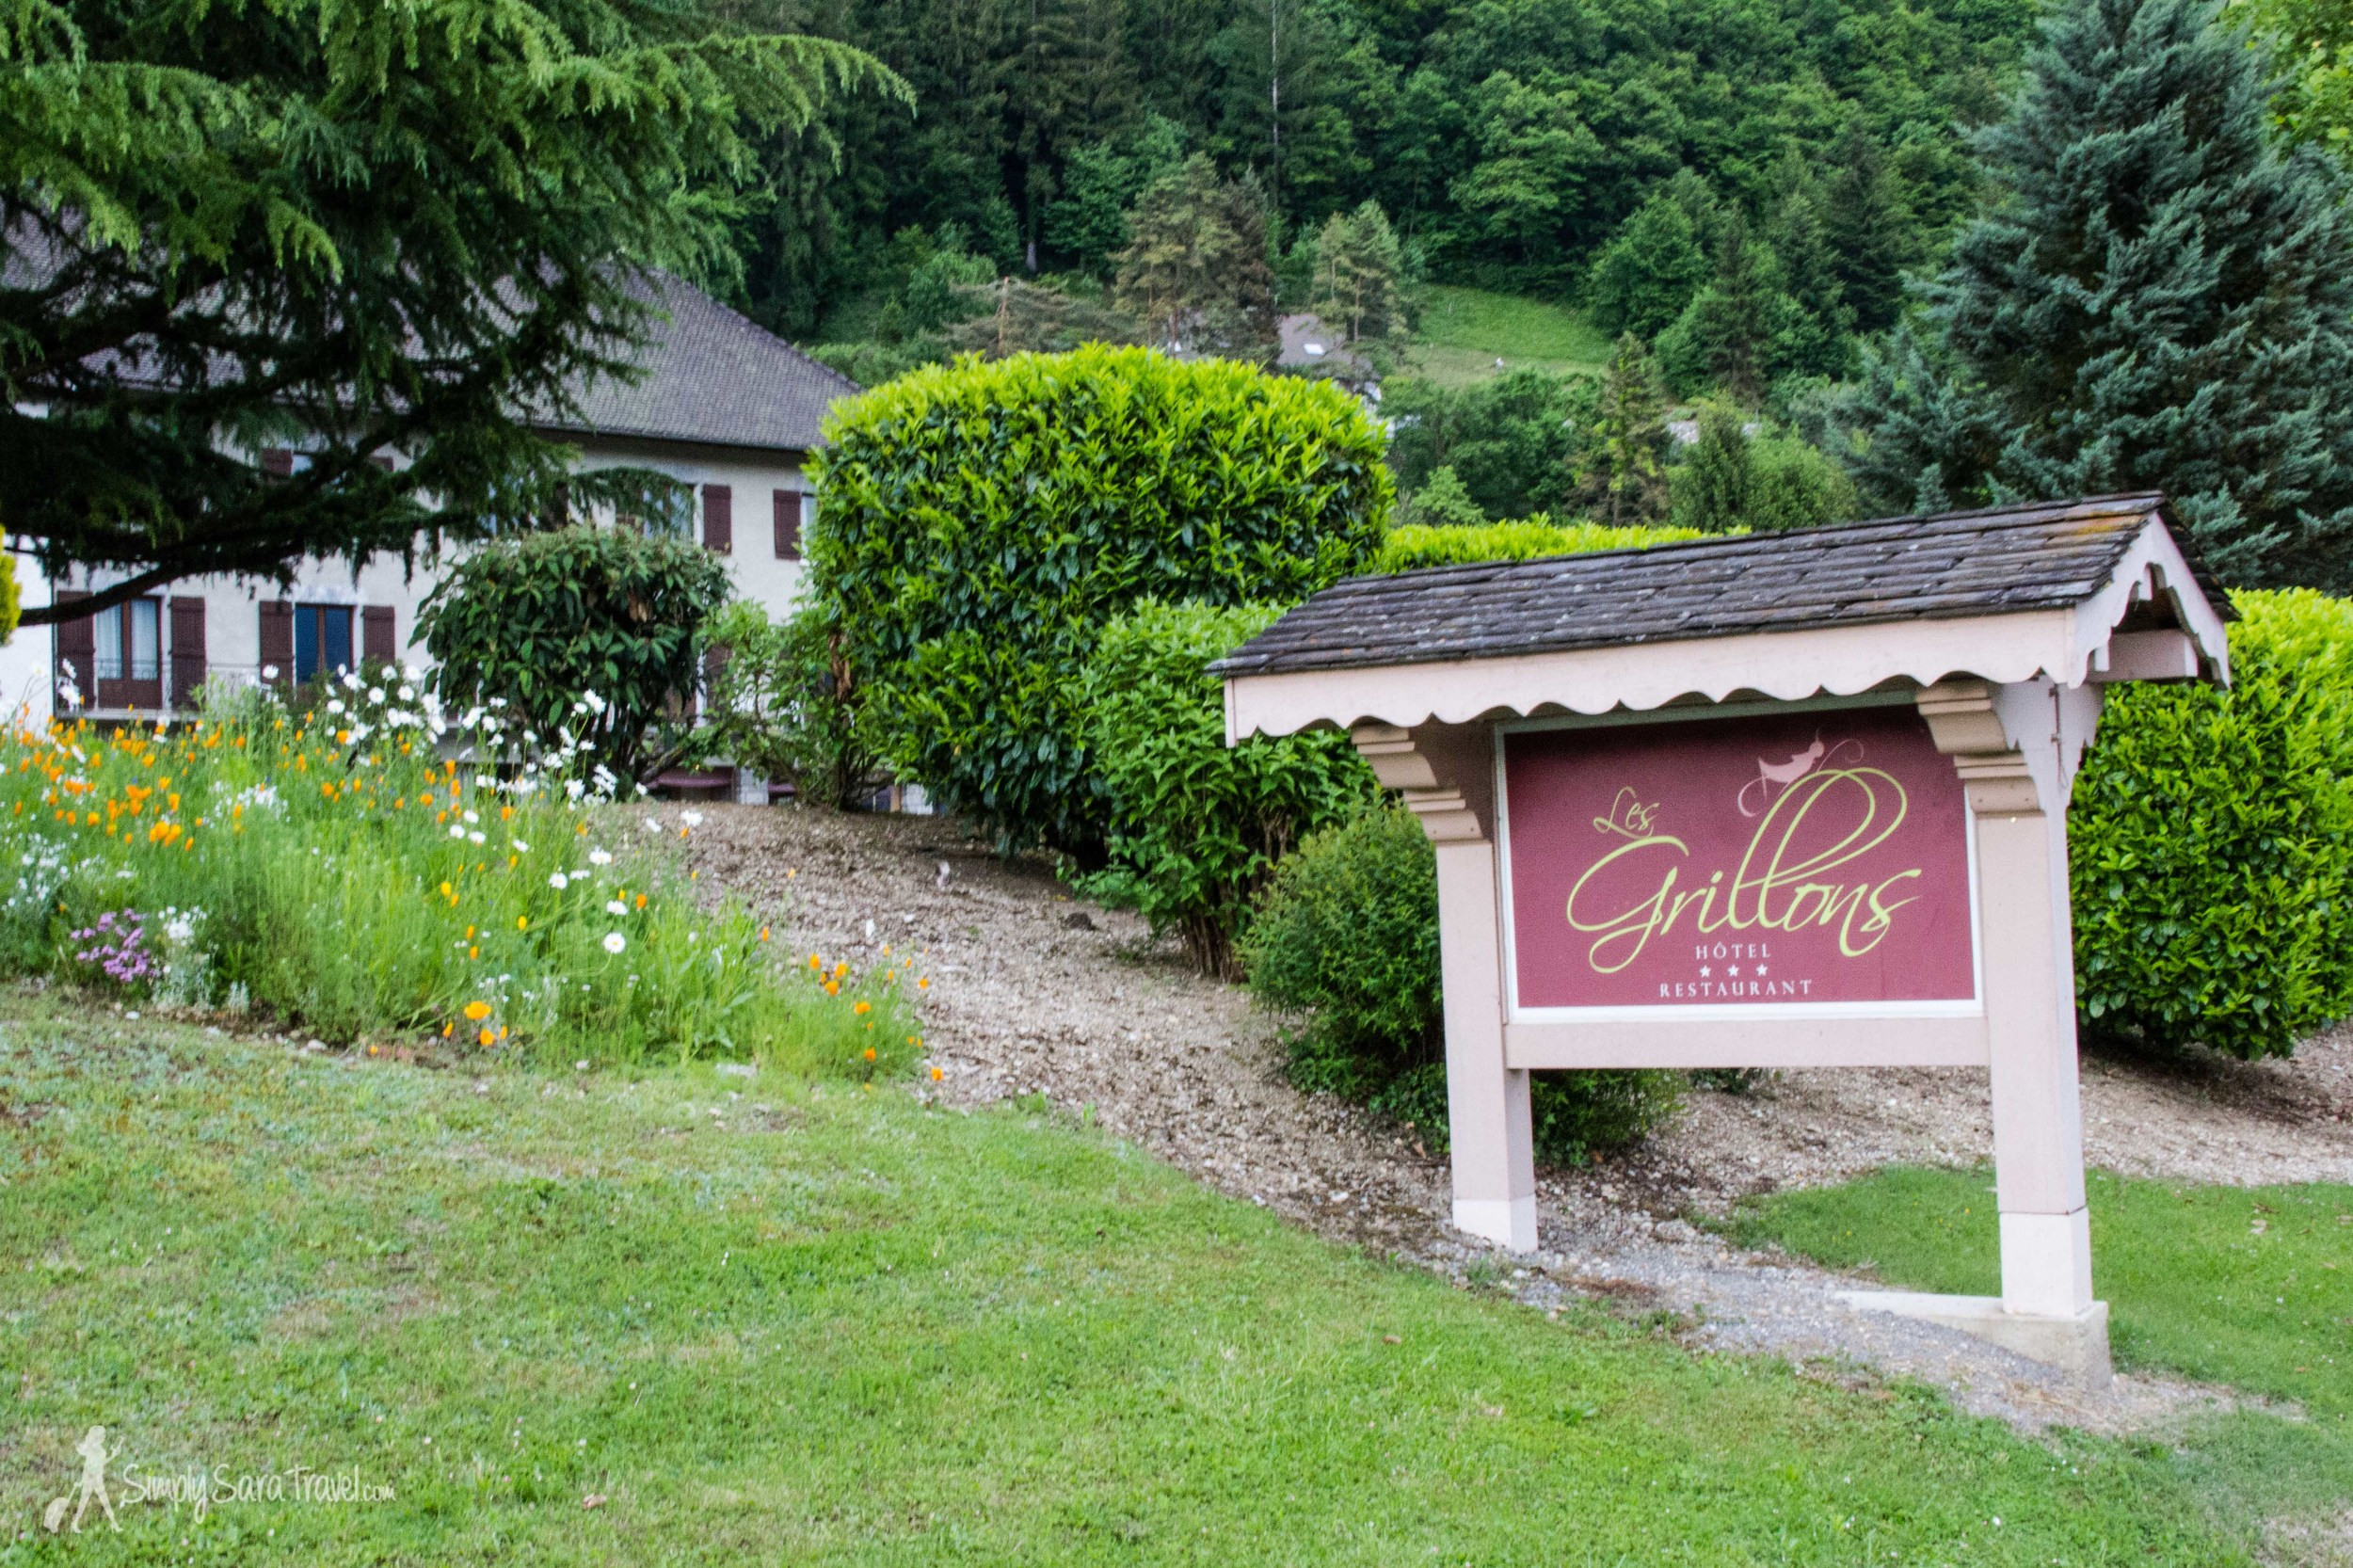 Hotel Grillons near Annecy, France